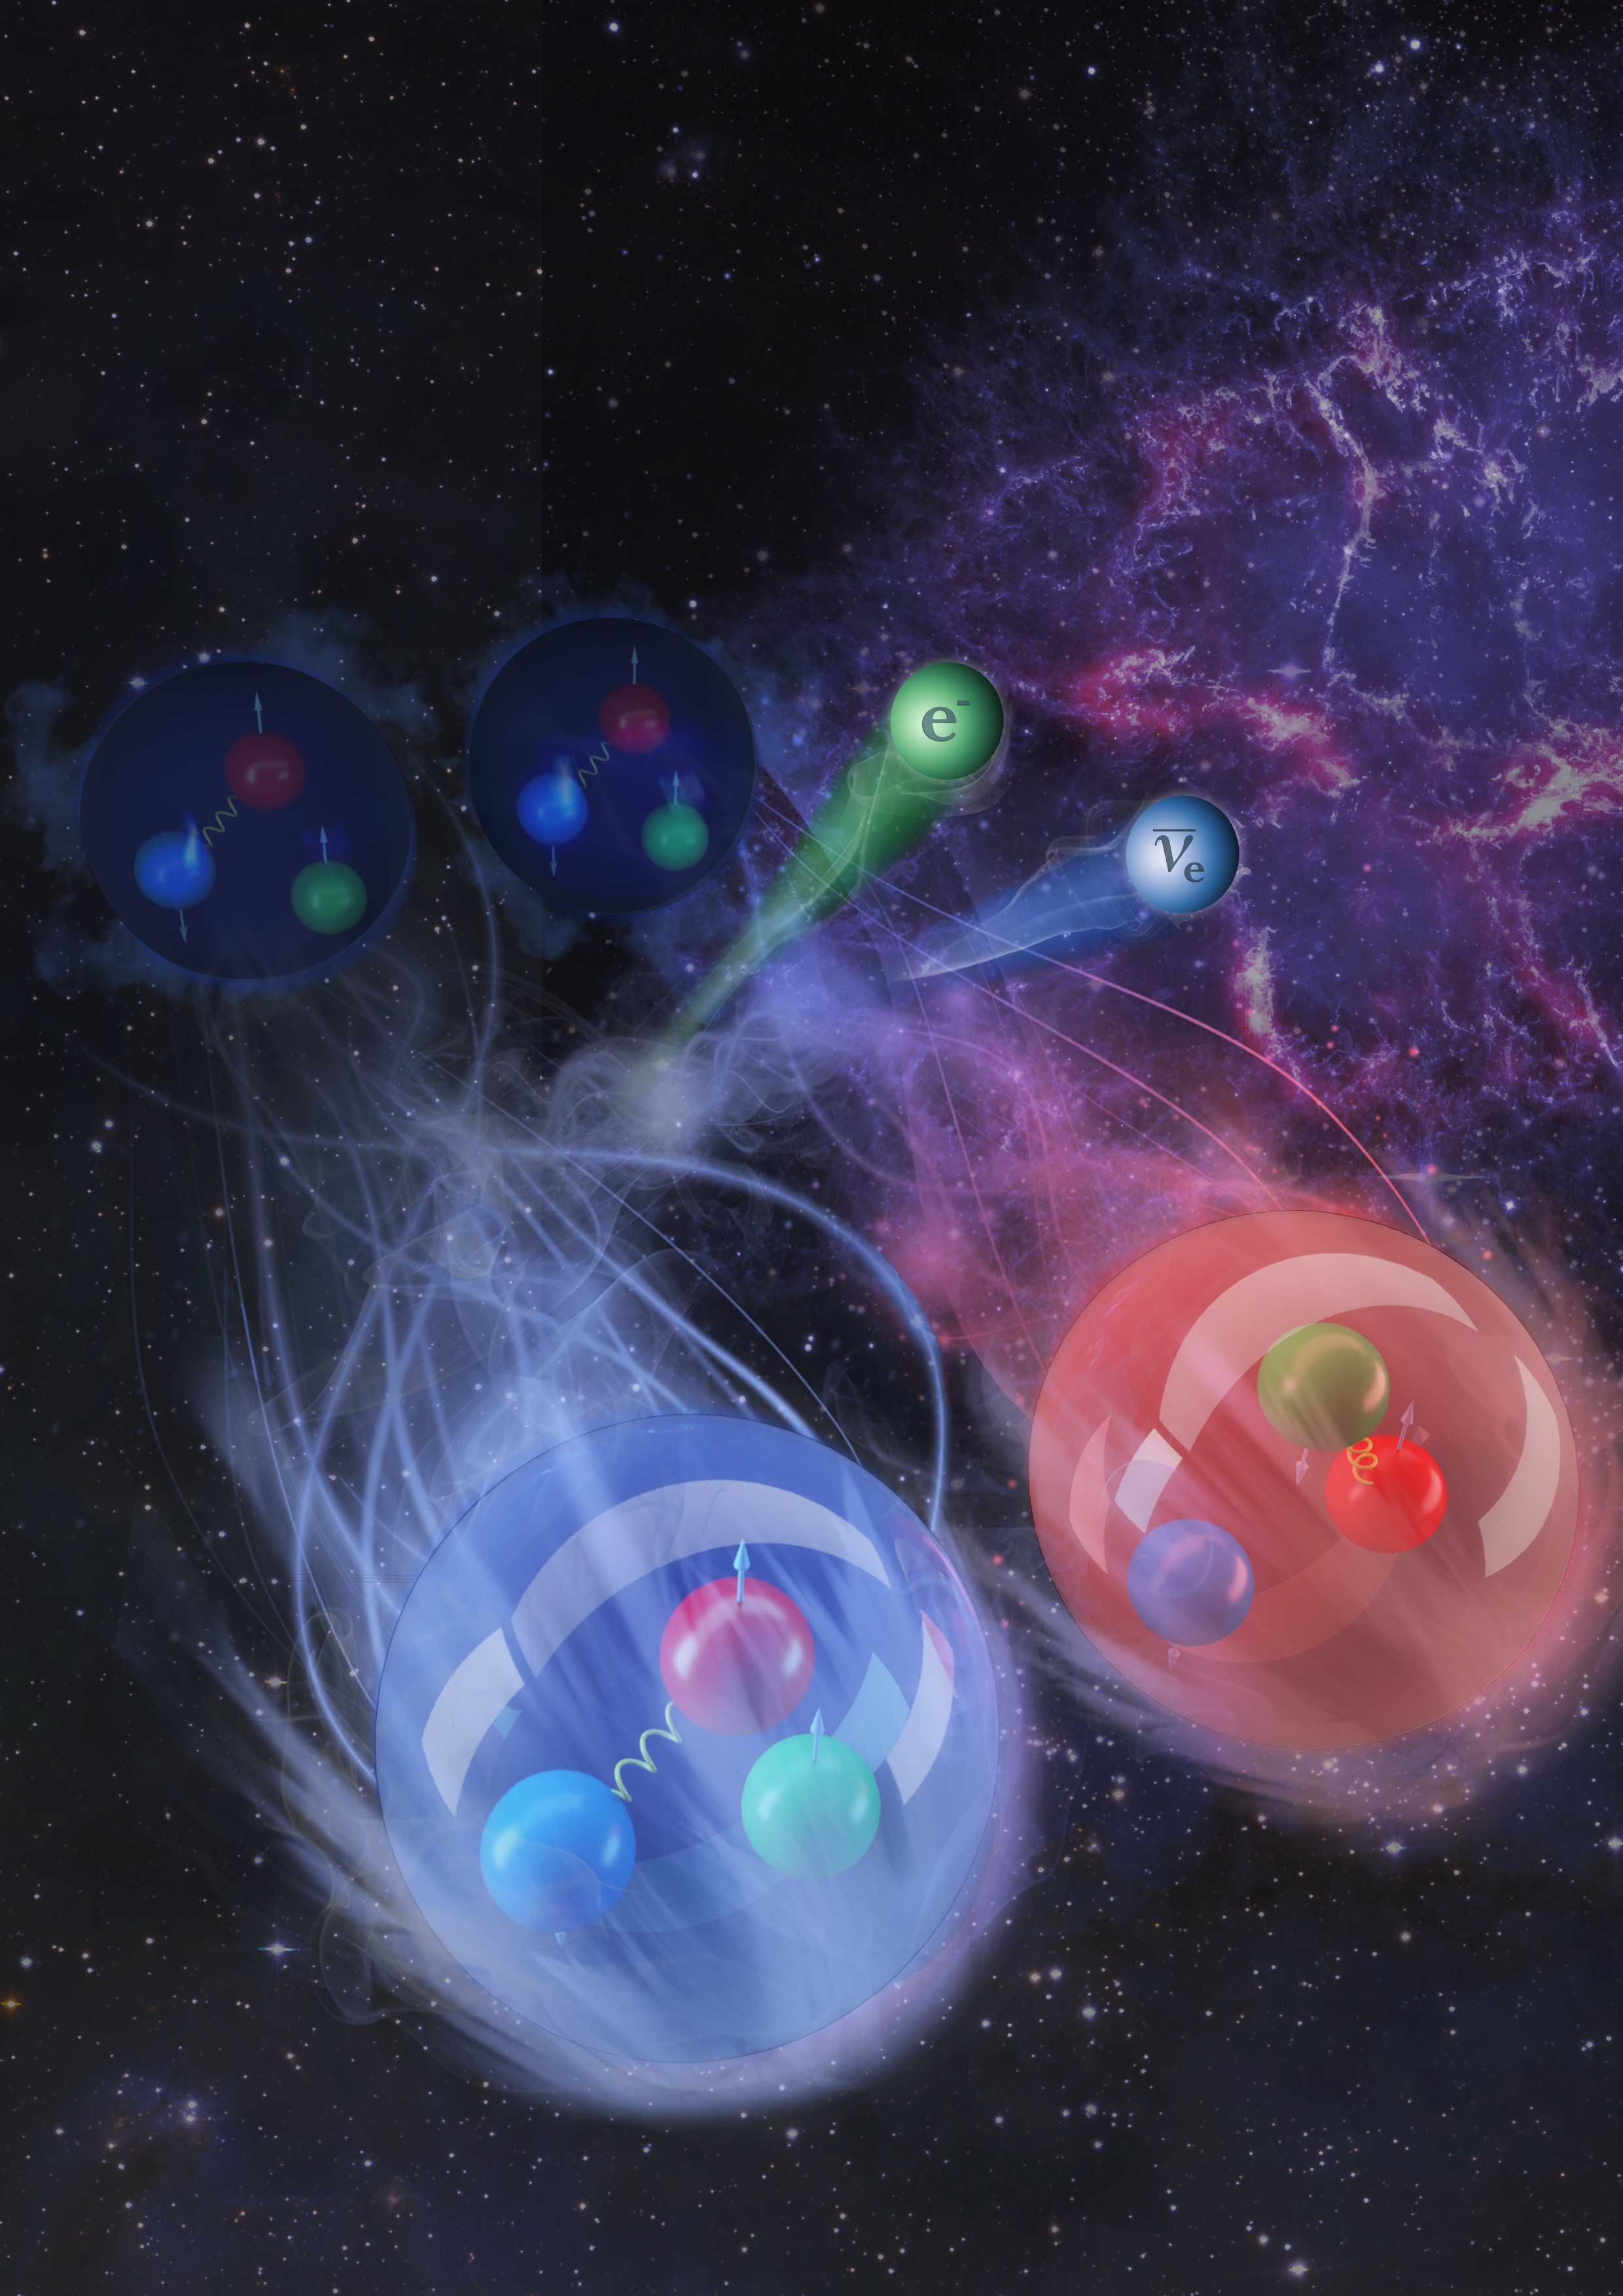 ORNL-led collaboration solves a beta-decay puzzle with advanced nuclear models